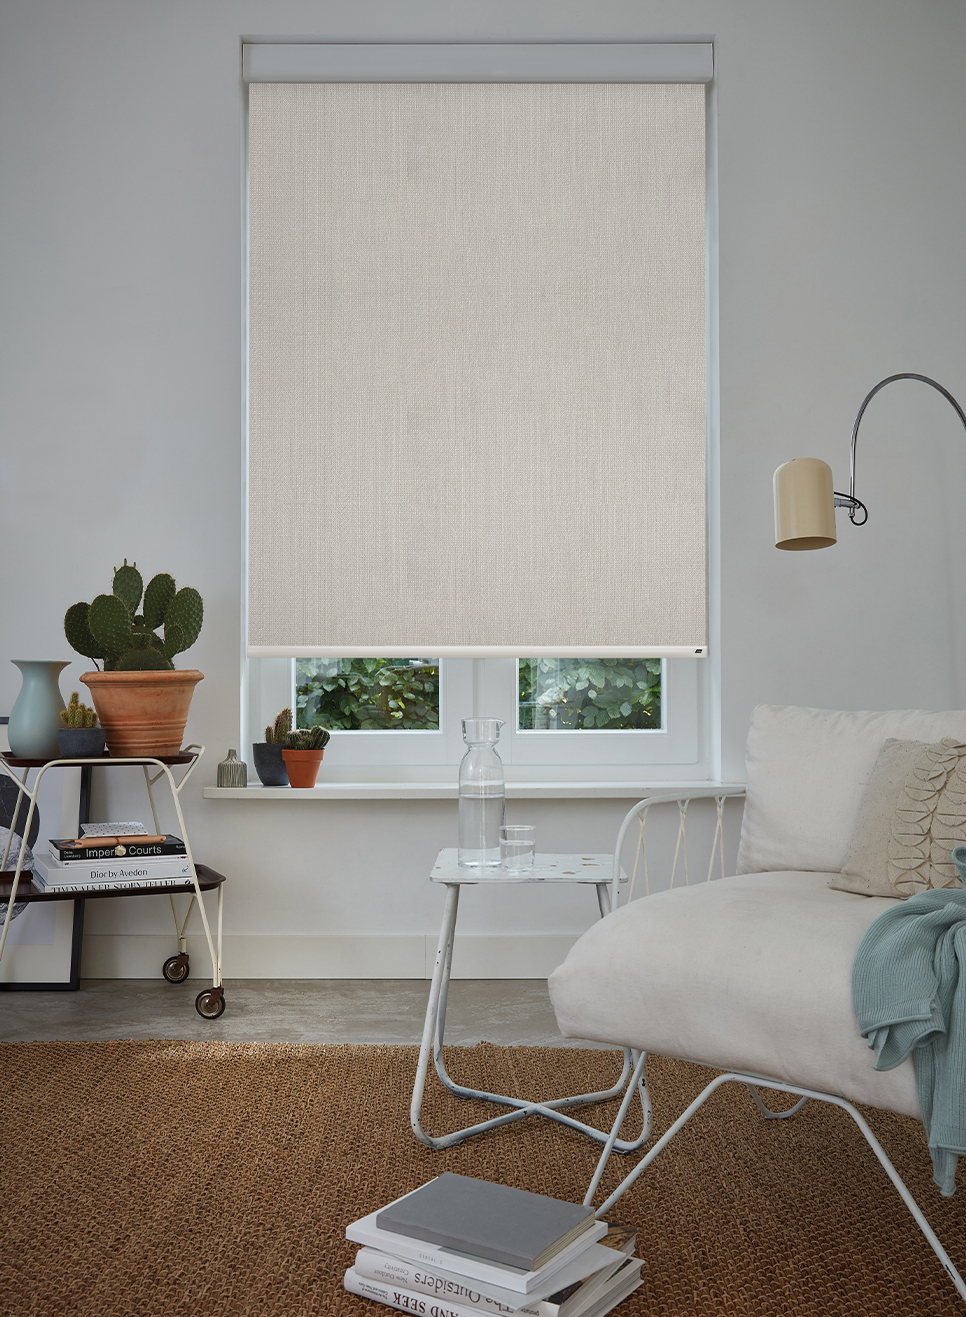 New Aria Light Filtering Roller Blind Fabric In New York Grey Colour